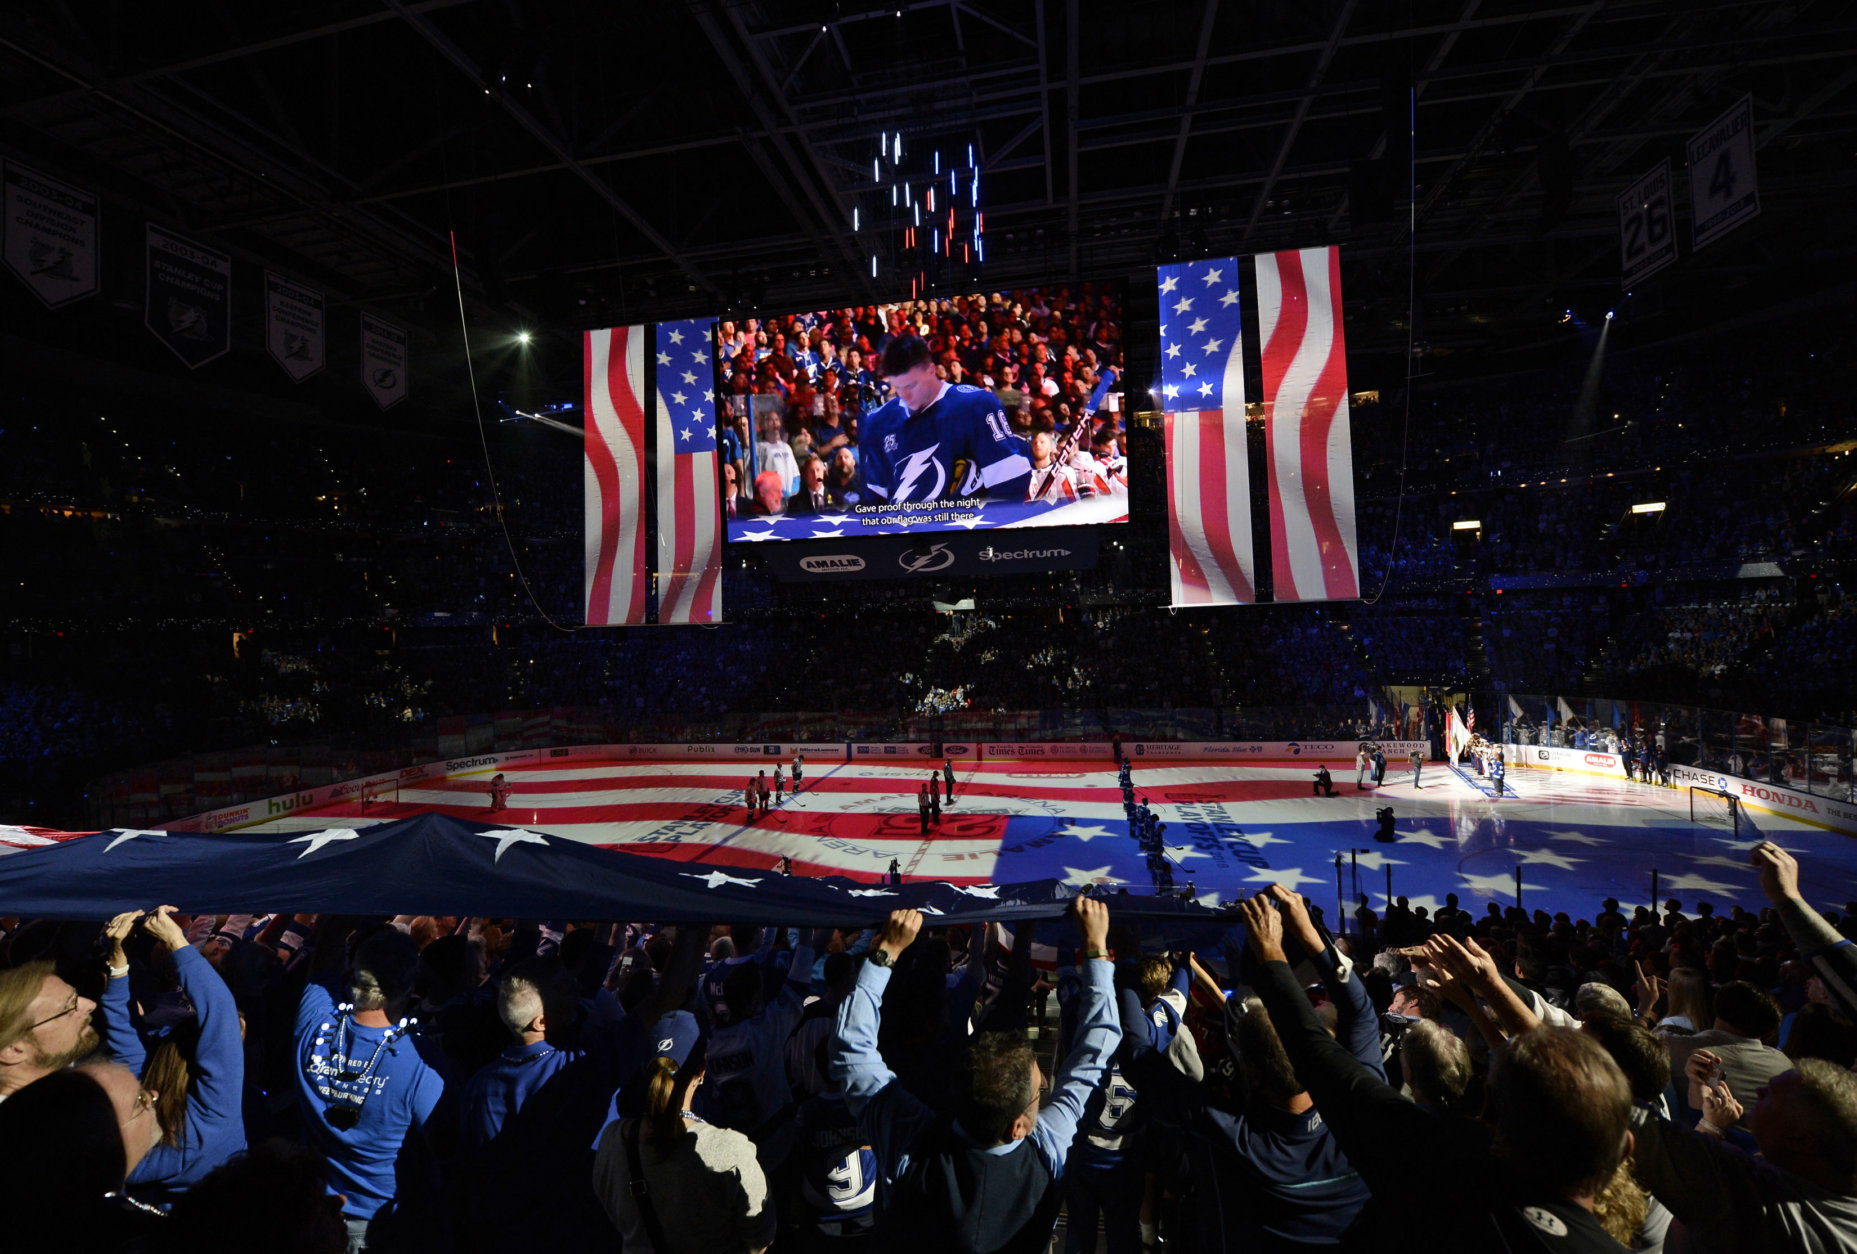 Fans cheer before Game 7 of the NHL Eastern Conference finals hockey playoff series between the Tampa Bay Lightning and the Washington Capitals Wednesday, May 23, 2018, in Tampa, Fla. (AP Photo/Jason Behnken)